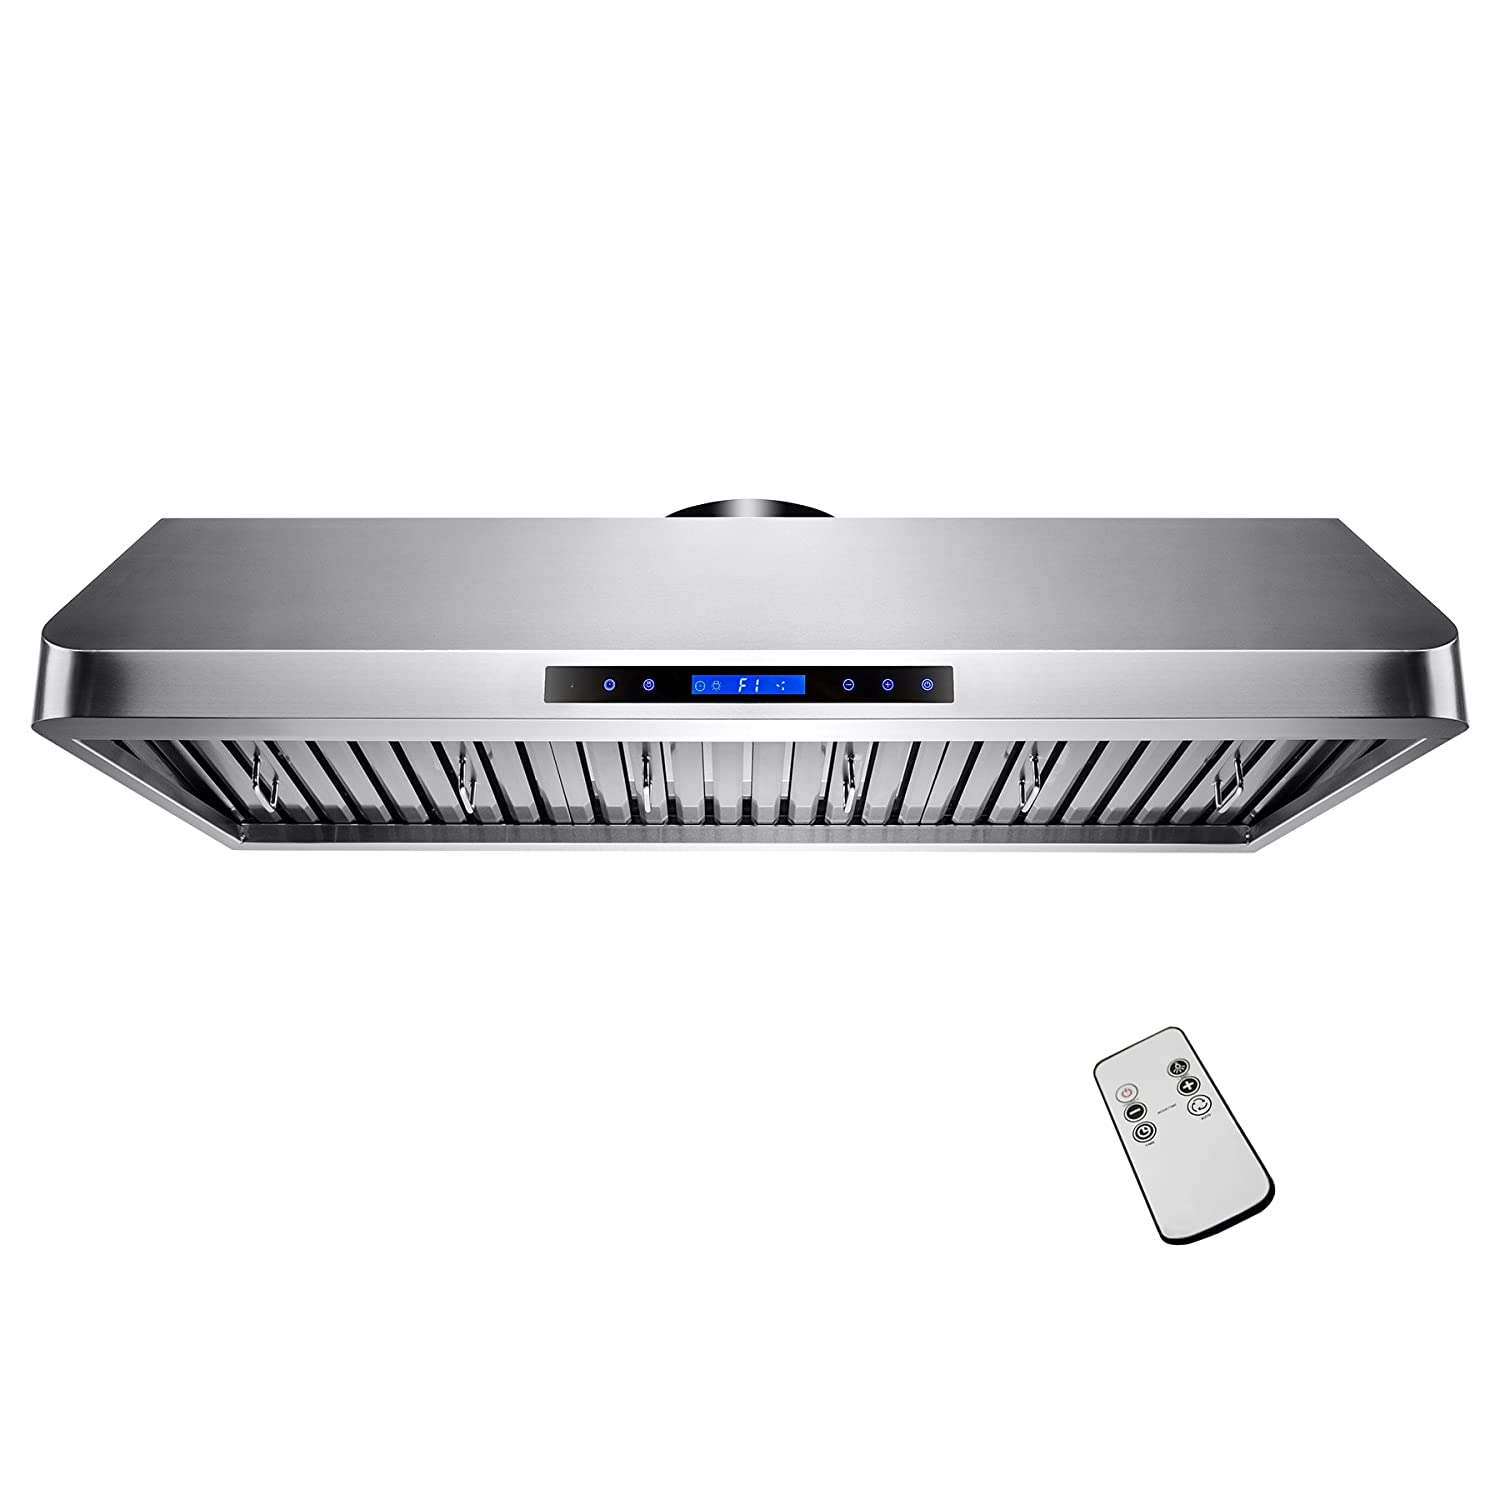 "AKDY 48"" Under Cabinet Kitchen Cooking Vent LED Touch Control Stainless Steel Range Hood"